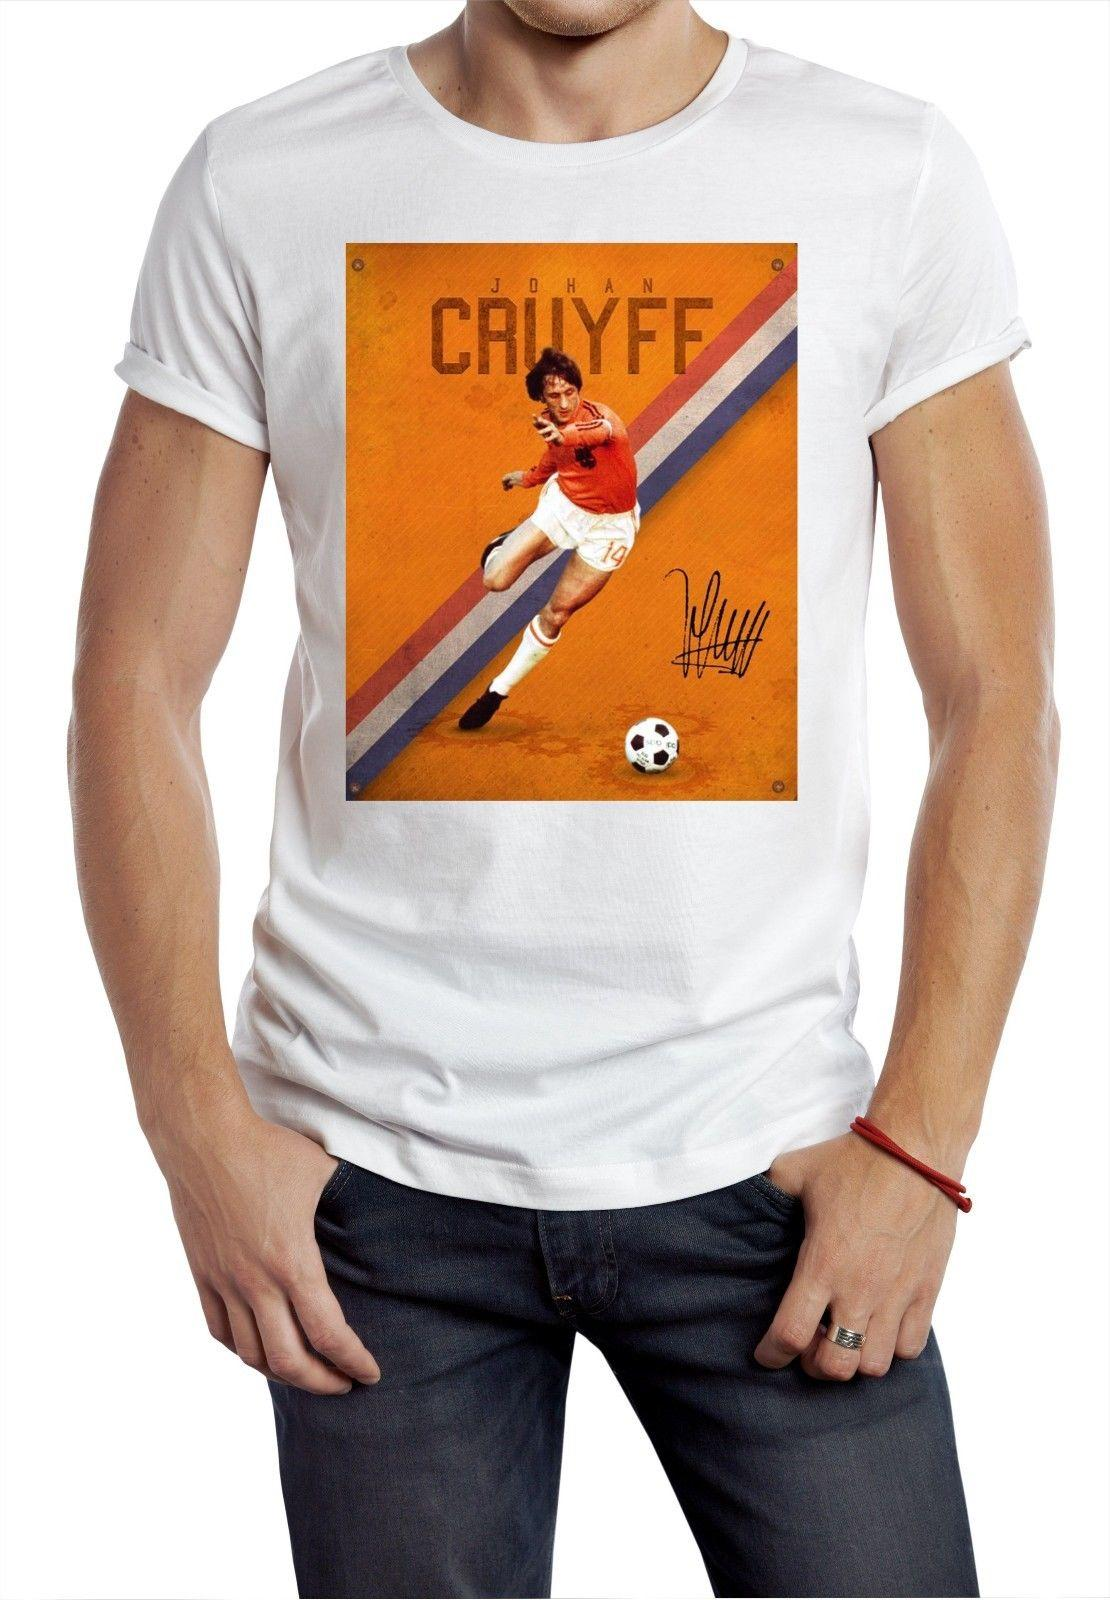 6dc1be6f1 Cruyff T-shirt Dutch Classic 70s 80s Master Football Tee Soccer Holland  Orange Online with  12.99 Piece on Beidhgate10 s Store